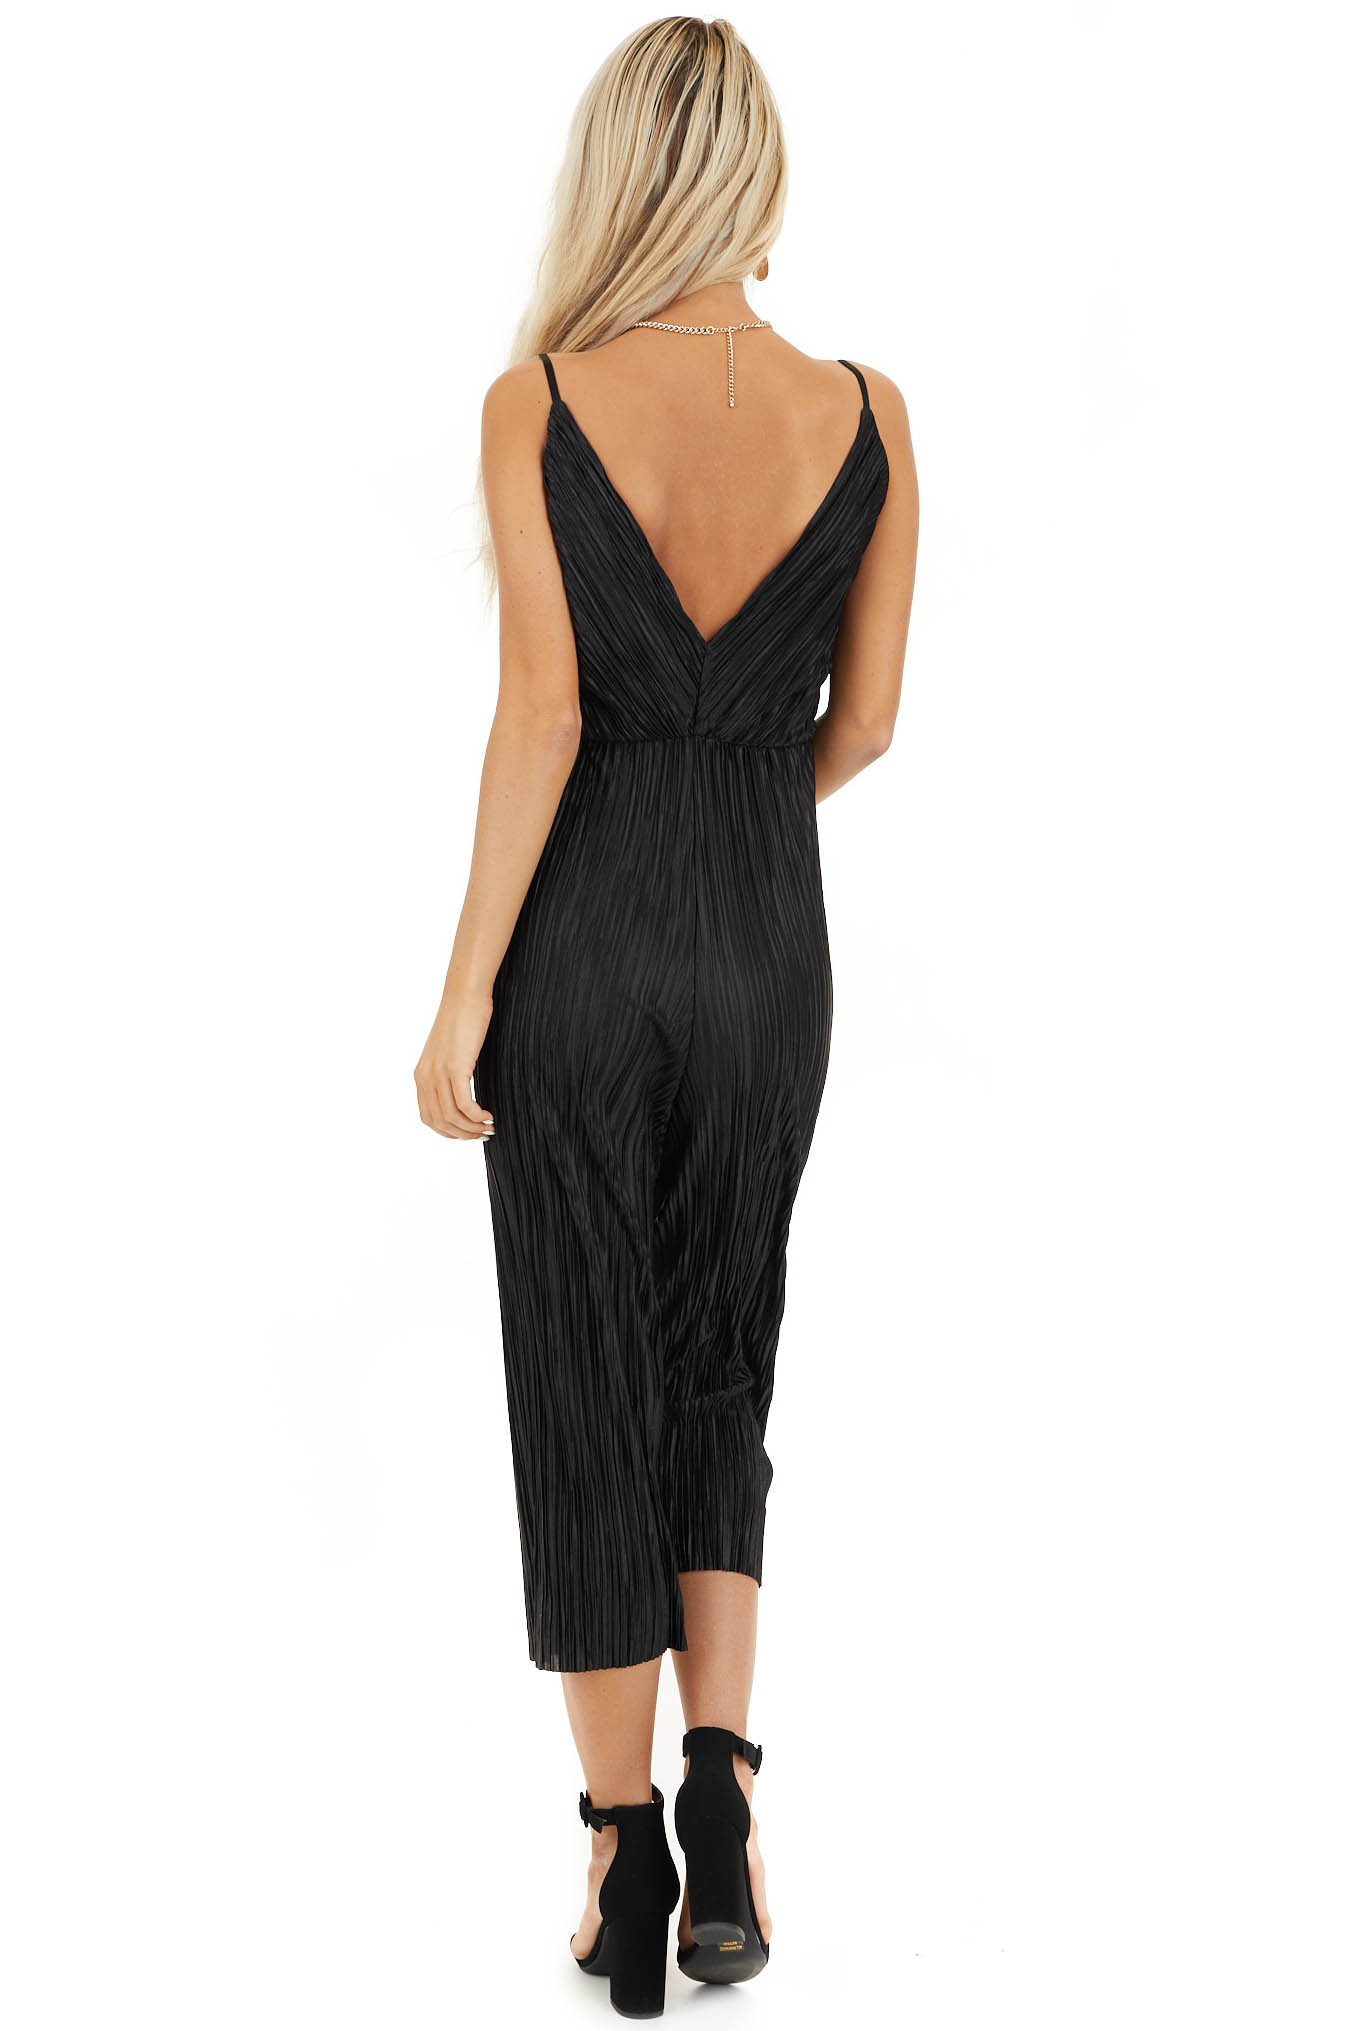 Black Silky Textured Jumpsuit with Criss Cross Neckline back full body